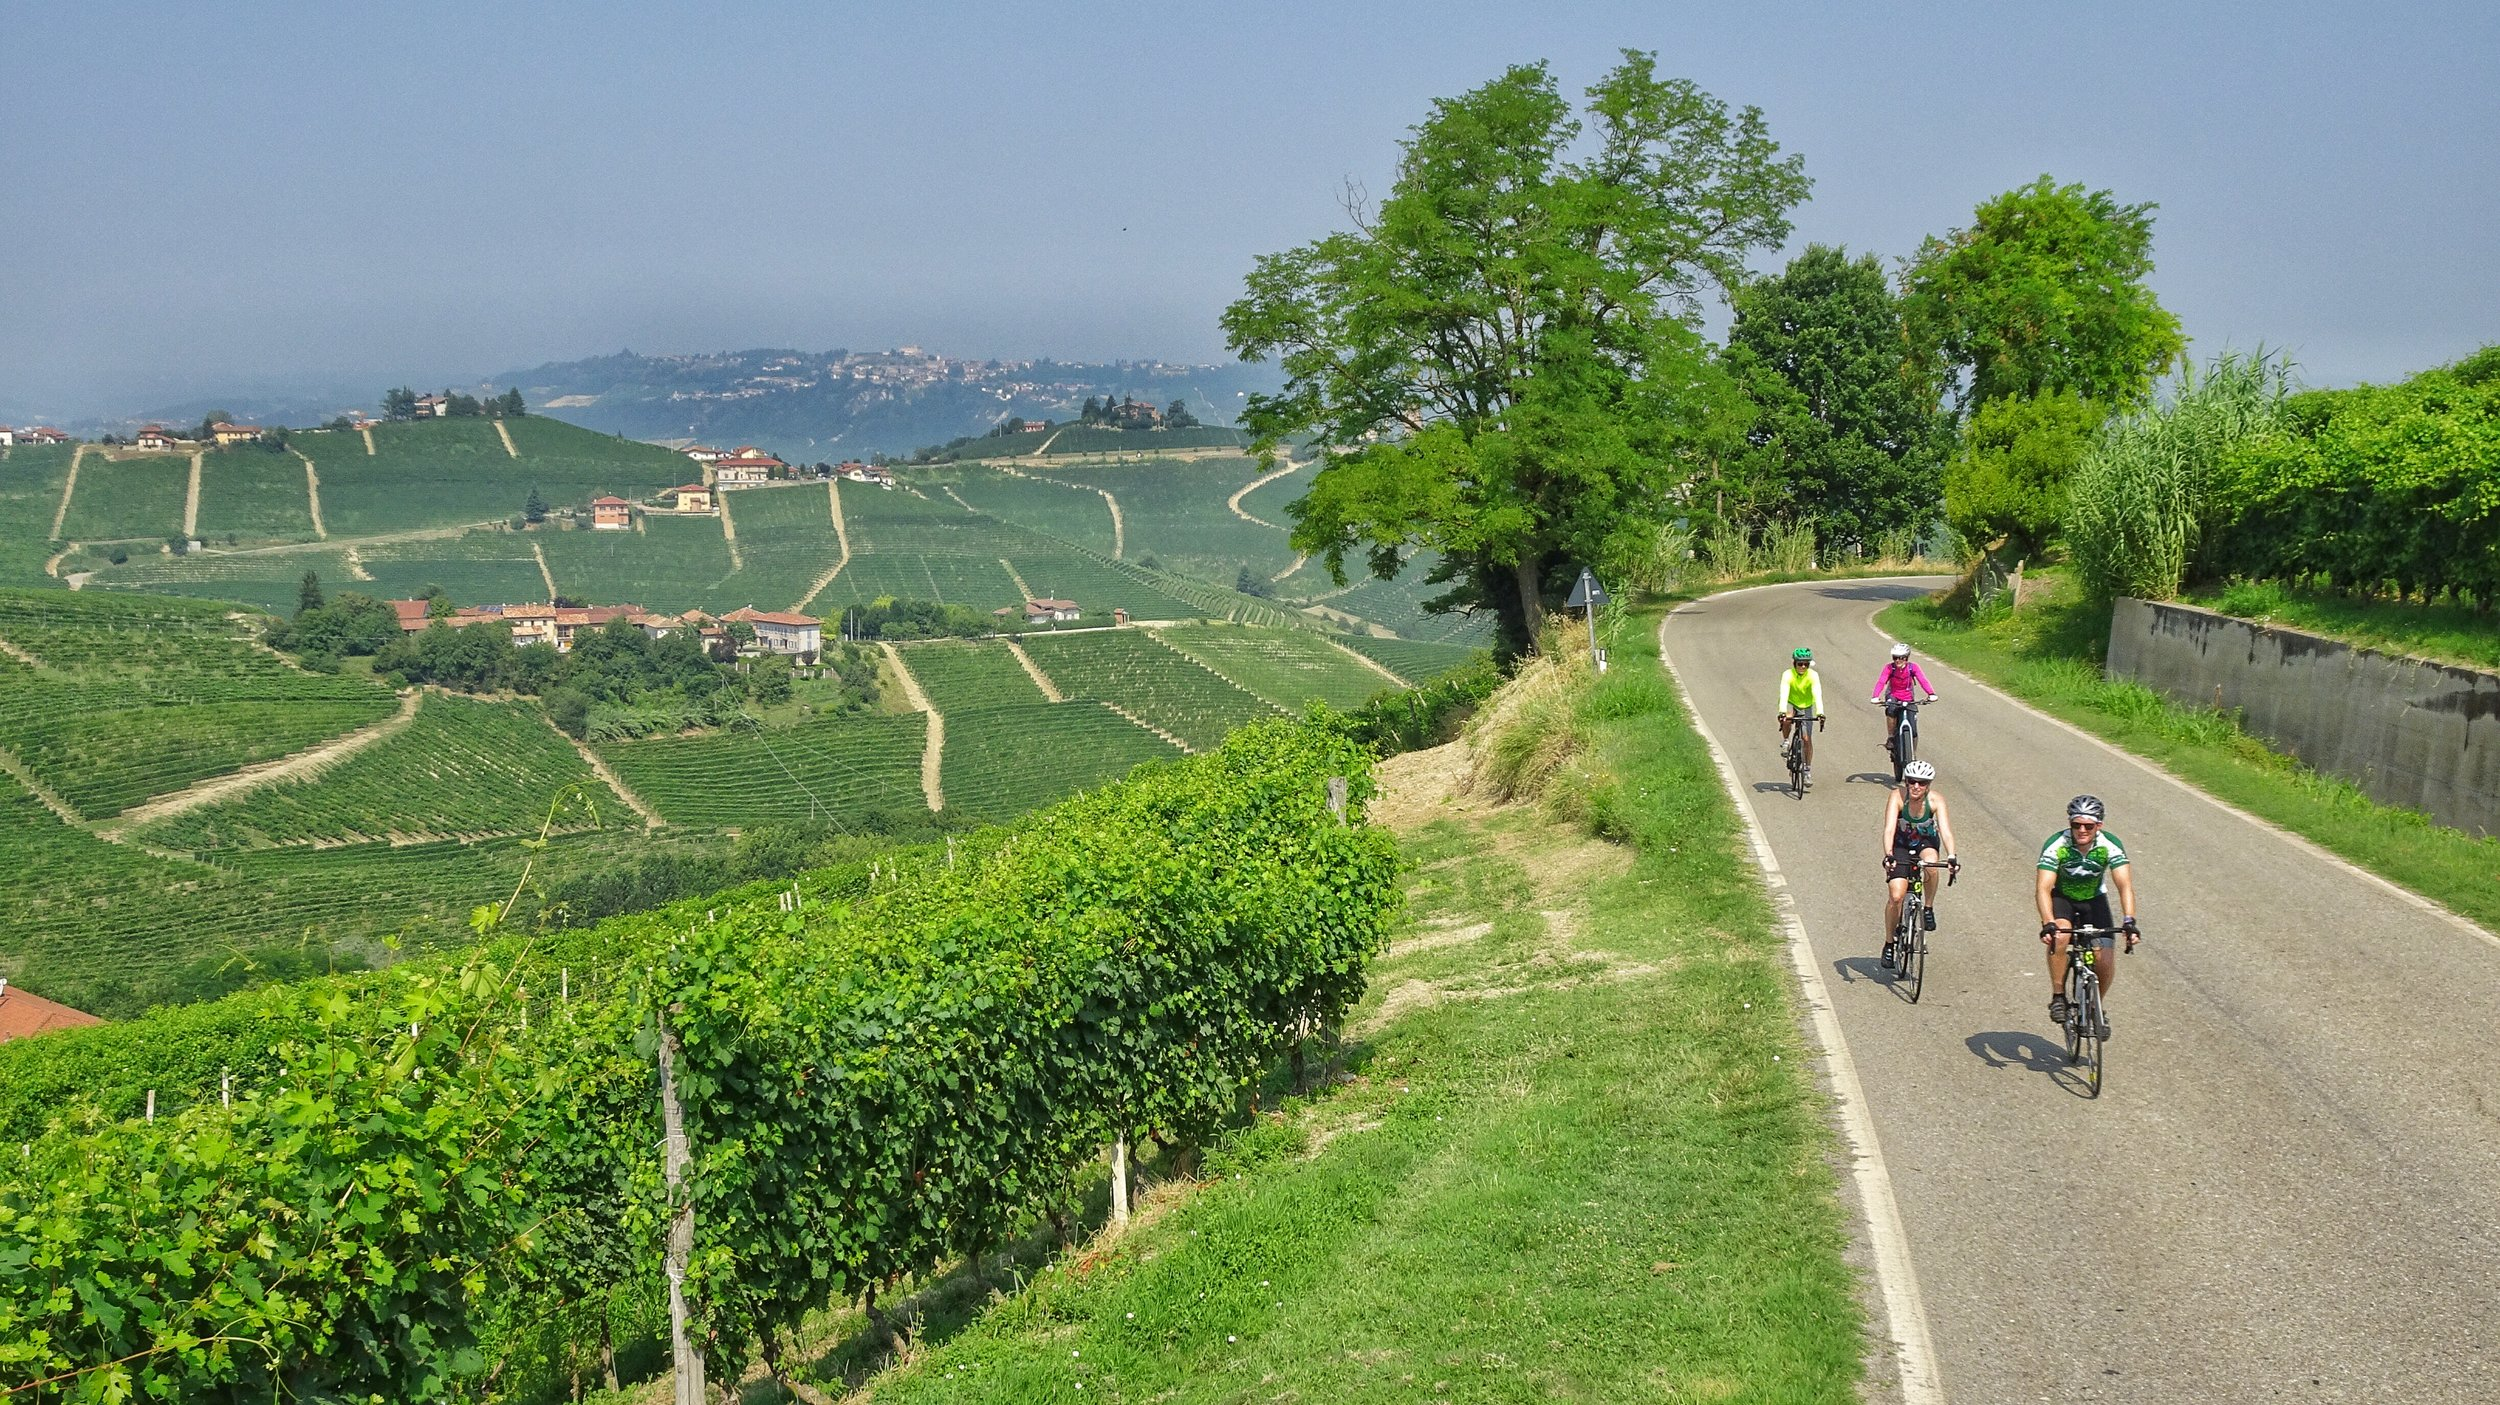 All roads lead to Barabaresco. The vino ain't bad either.